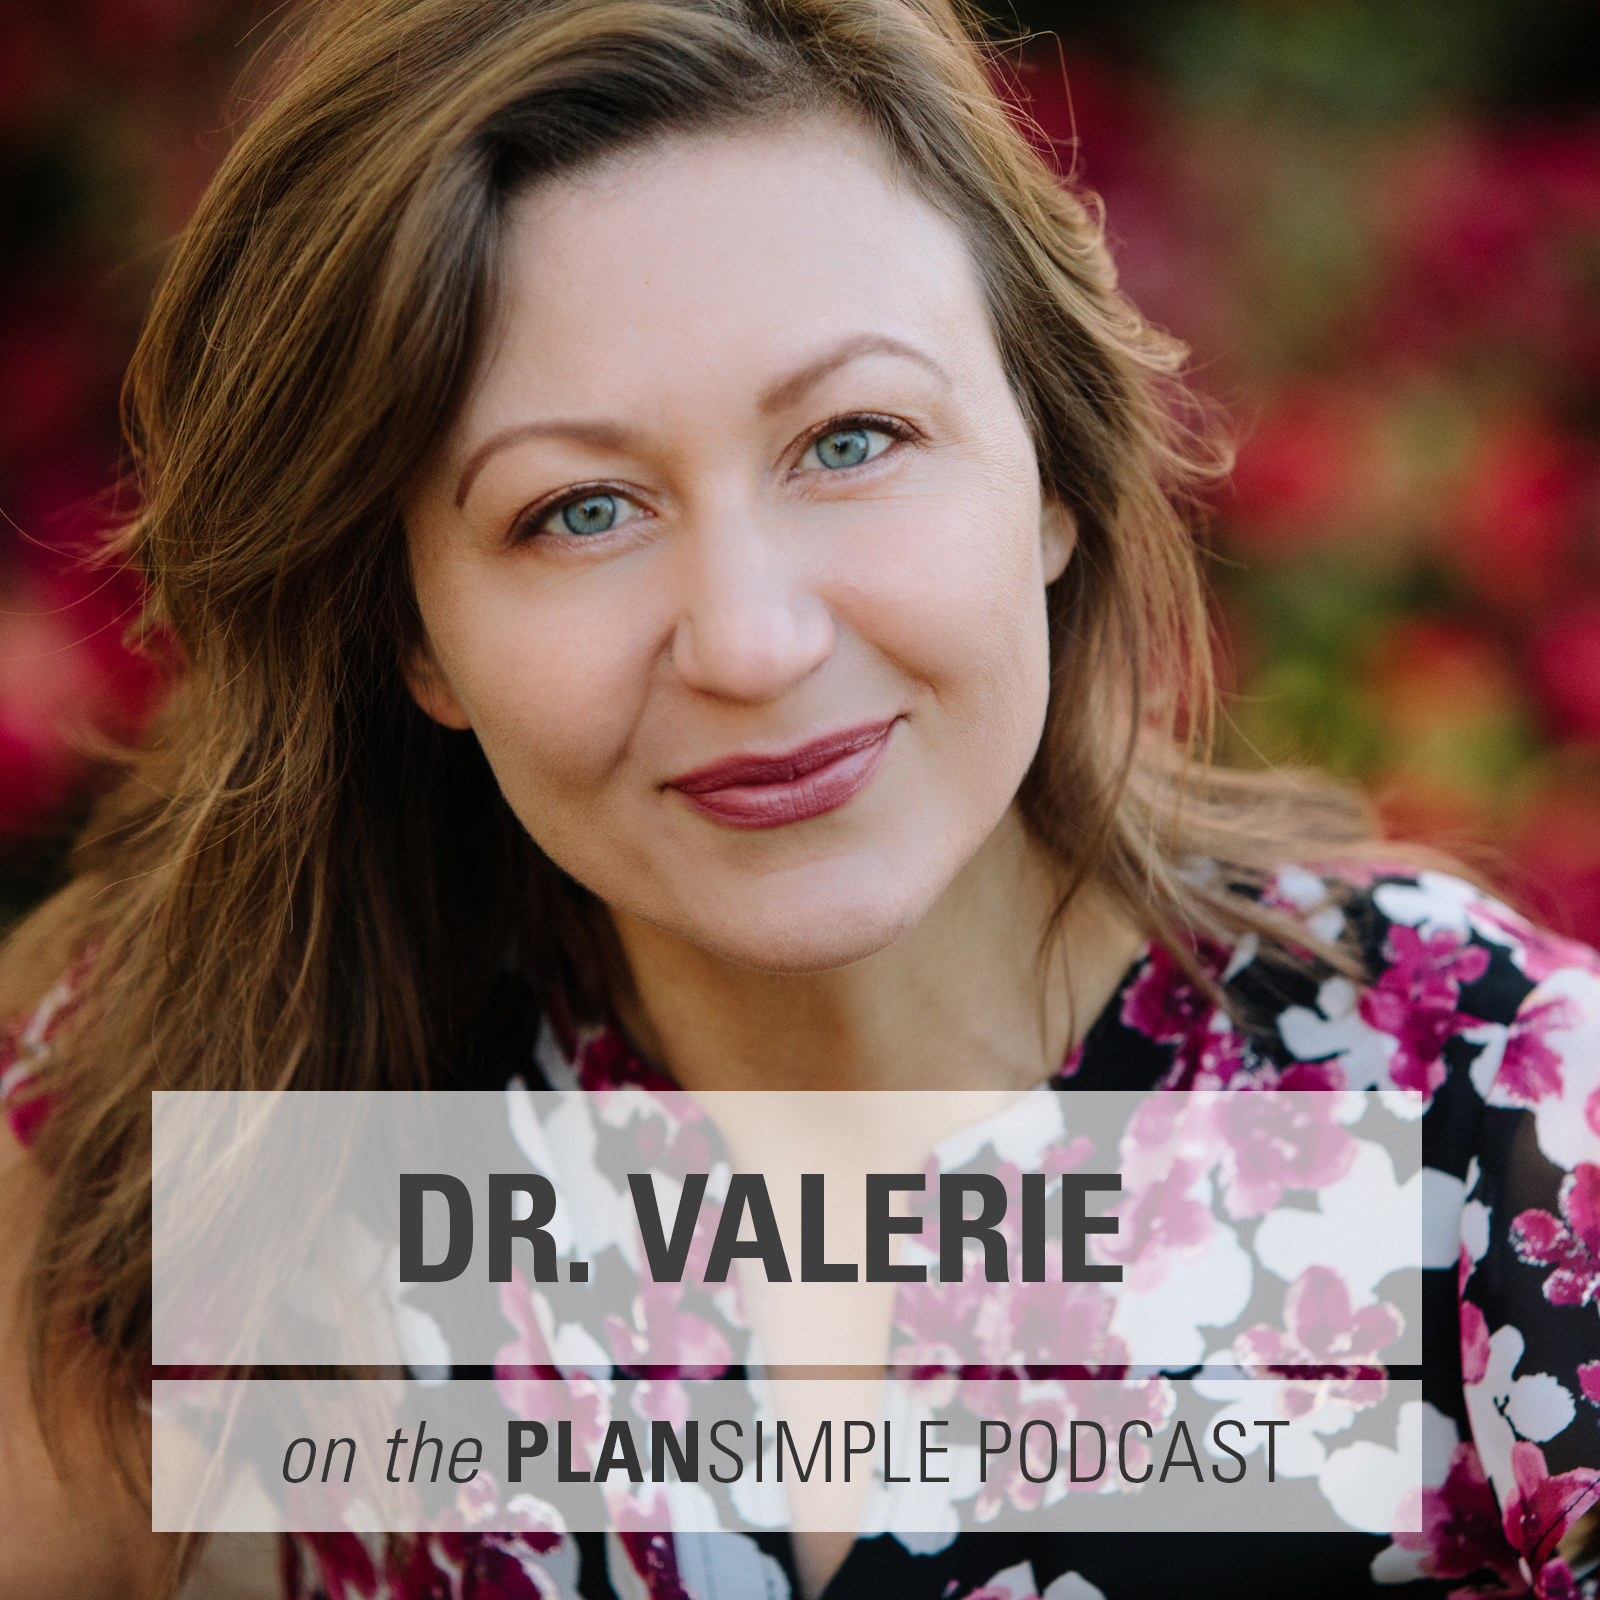 The Invisible Inner Barrier To Women's Happiness With Dr. Valerie